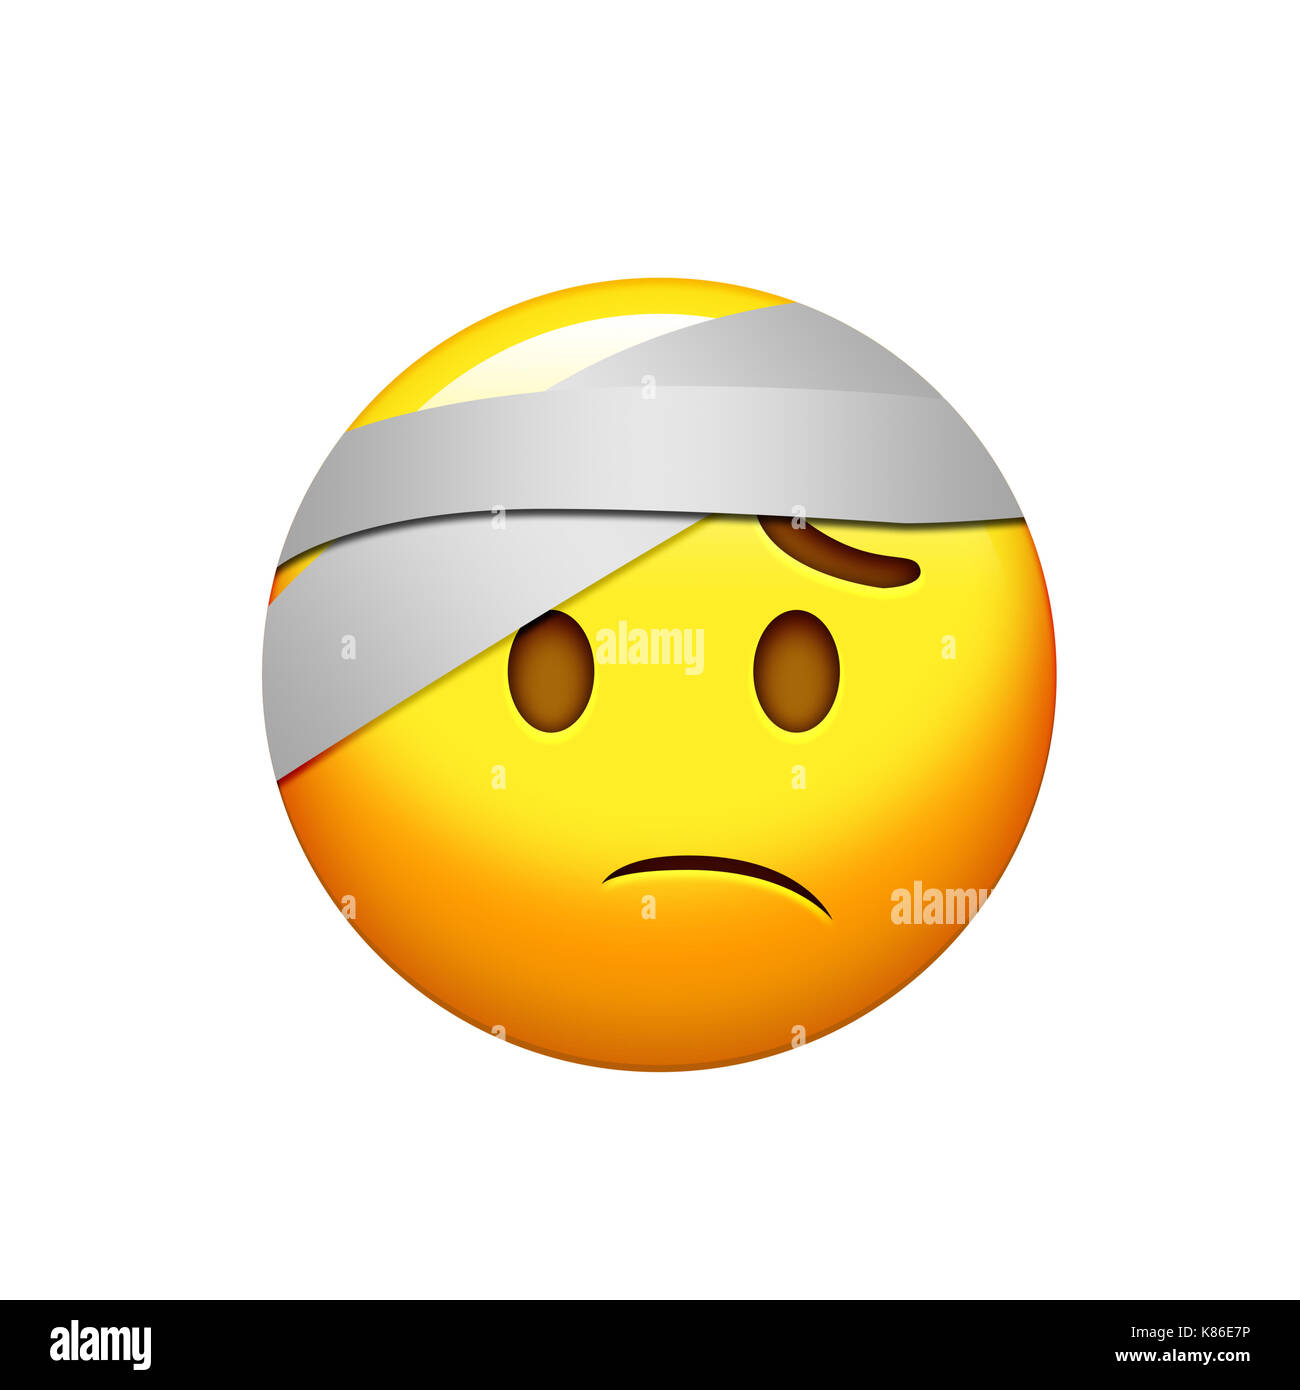 Yellow sick and uncomfortable face with wearing white mouth mask yellow sick and uncomfortable face with wearing white mouth mask icon thecheapjerseys Image collections